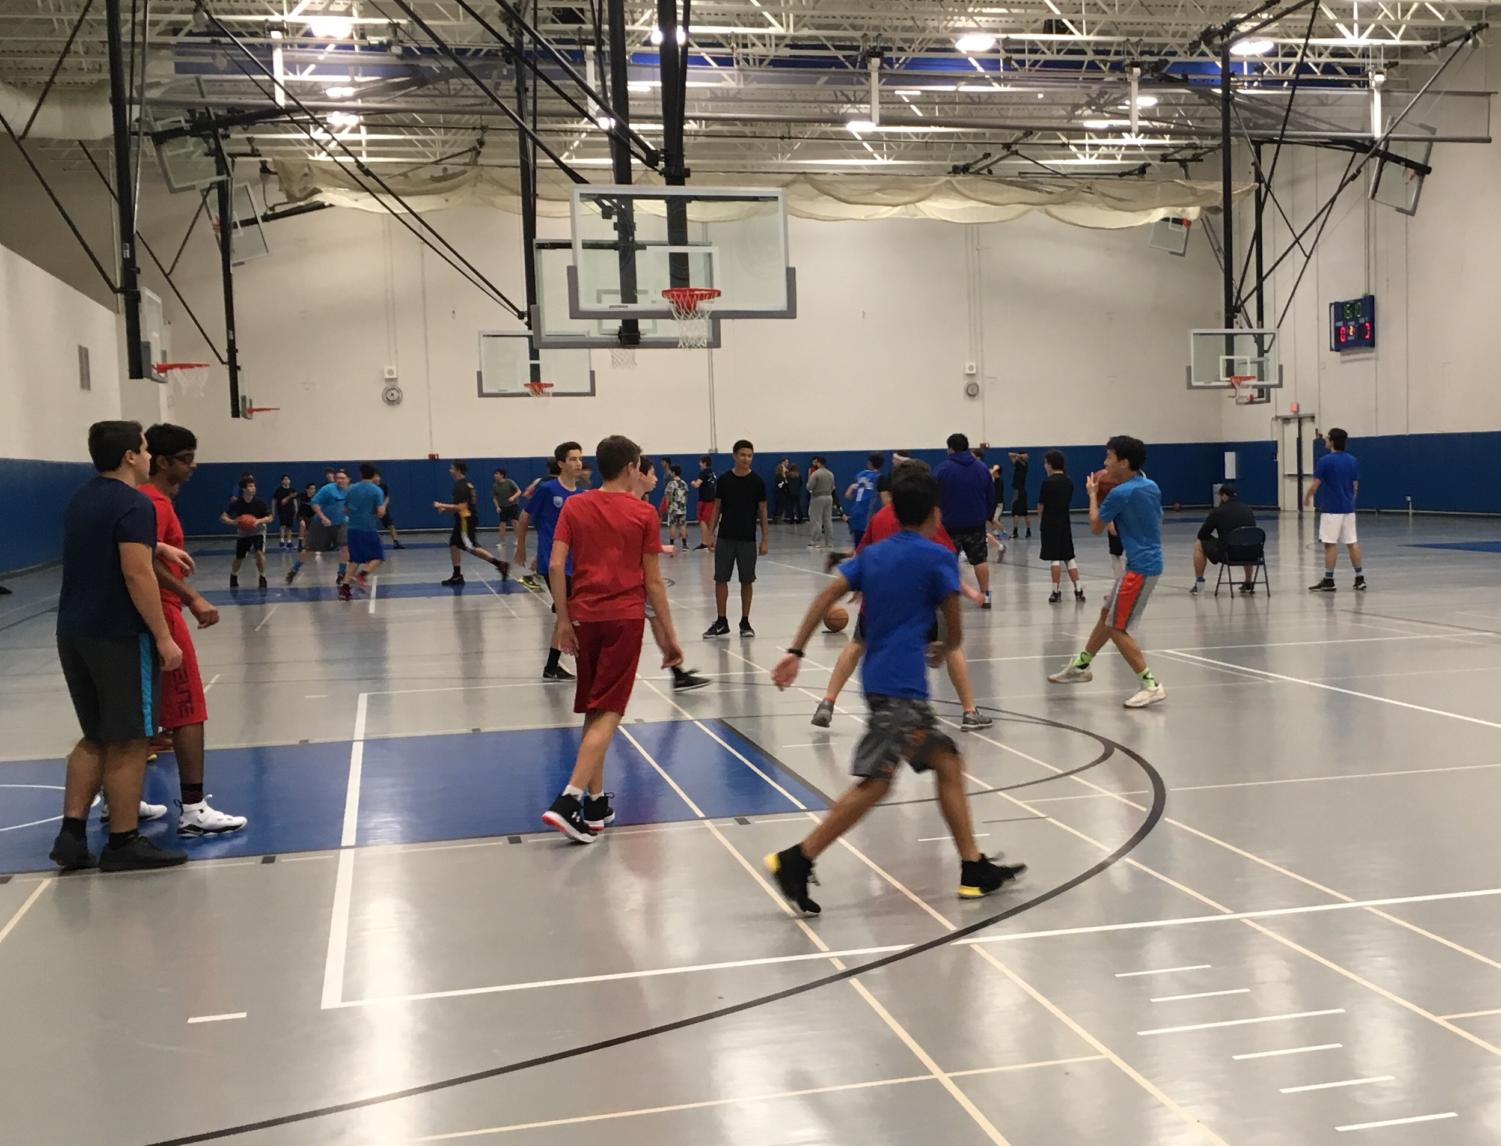 Full gym: Intramural Basketball games fill up the Fieldhouse from 6 to 8:30 p.m. on select Mondays and Wednesdays.